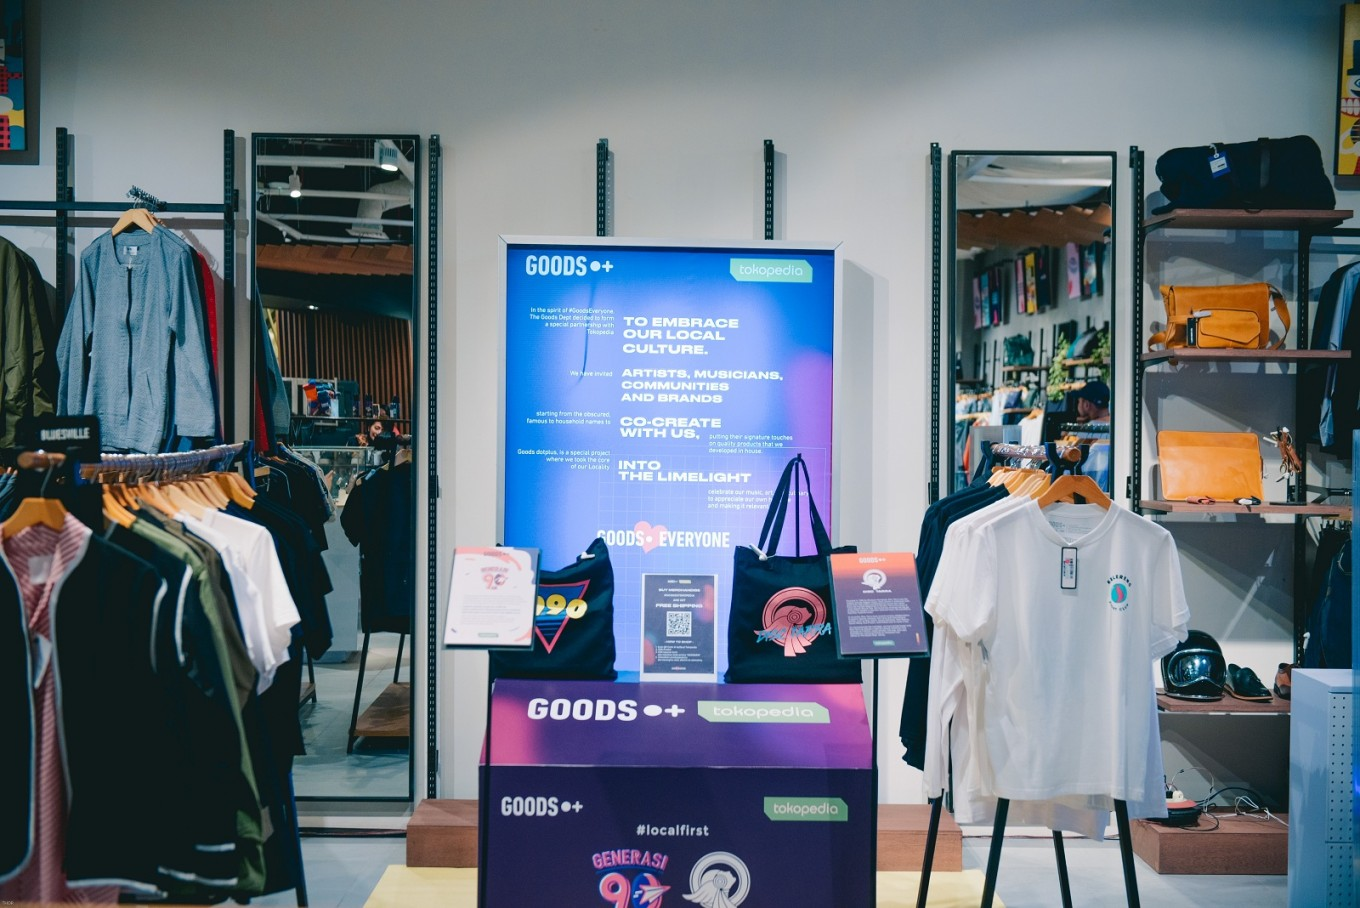 The Goods Dept., Tokopedia collaborate to highlight local culture